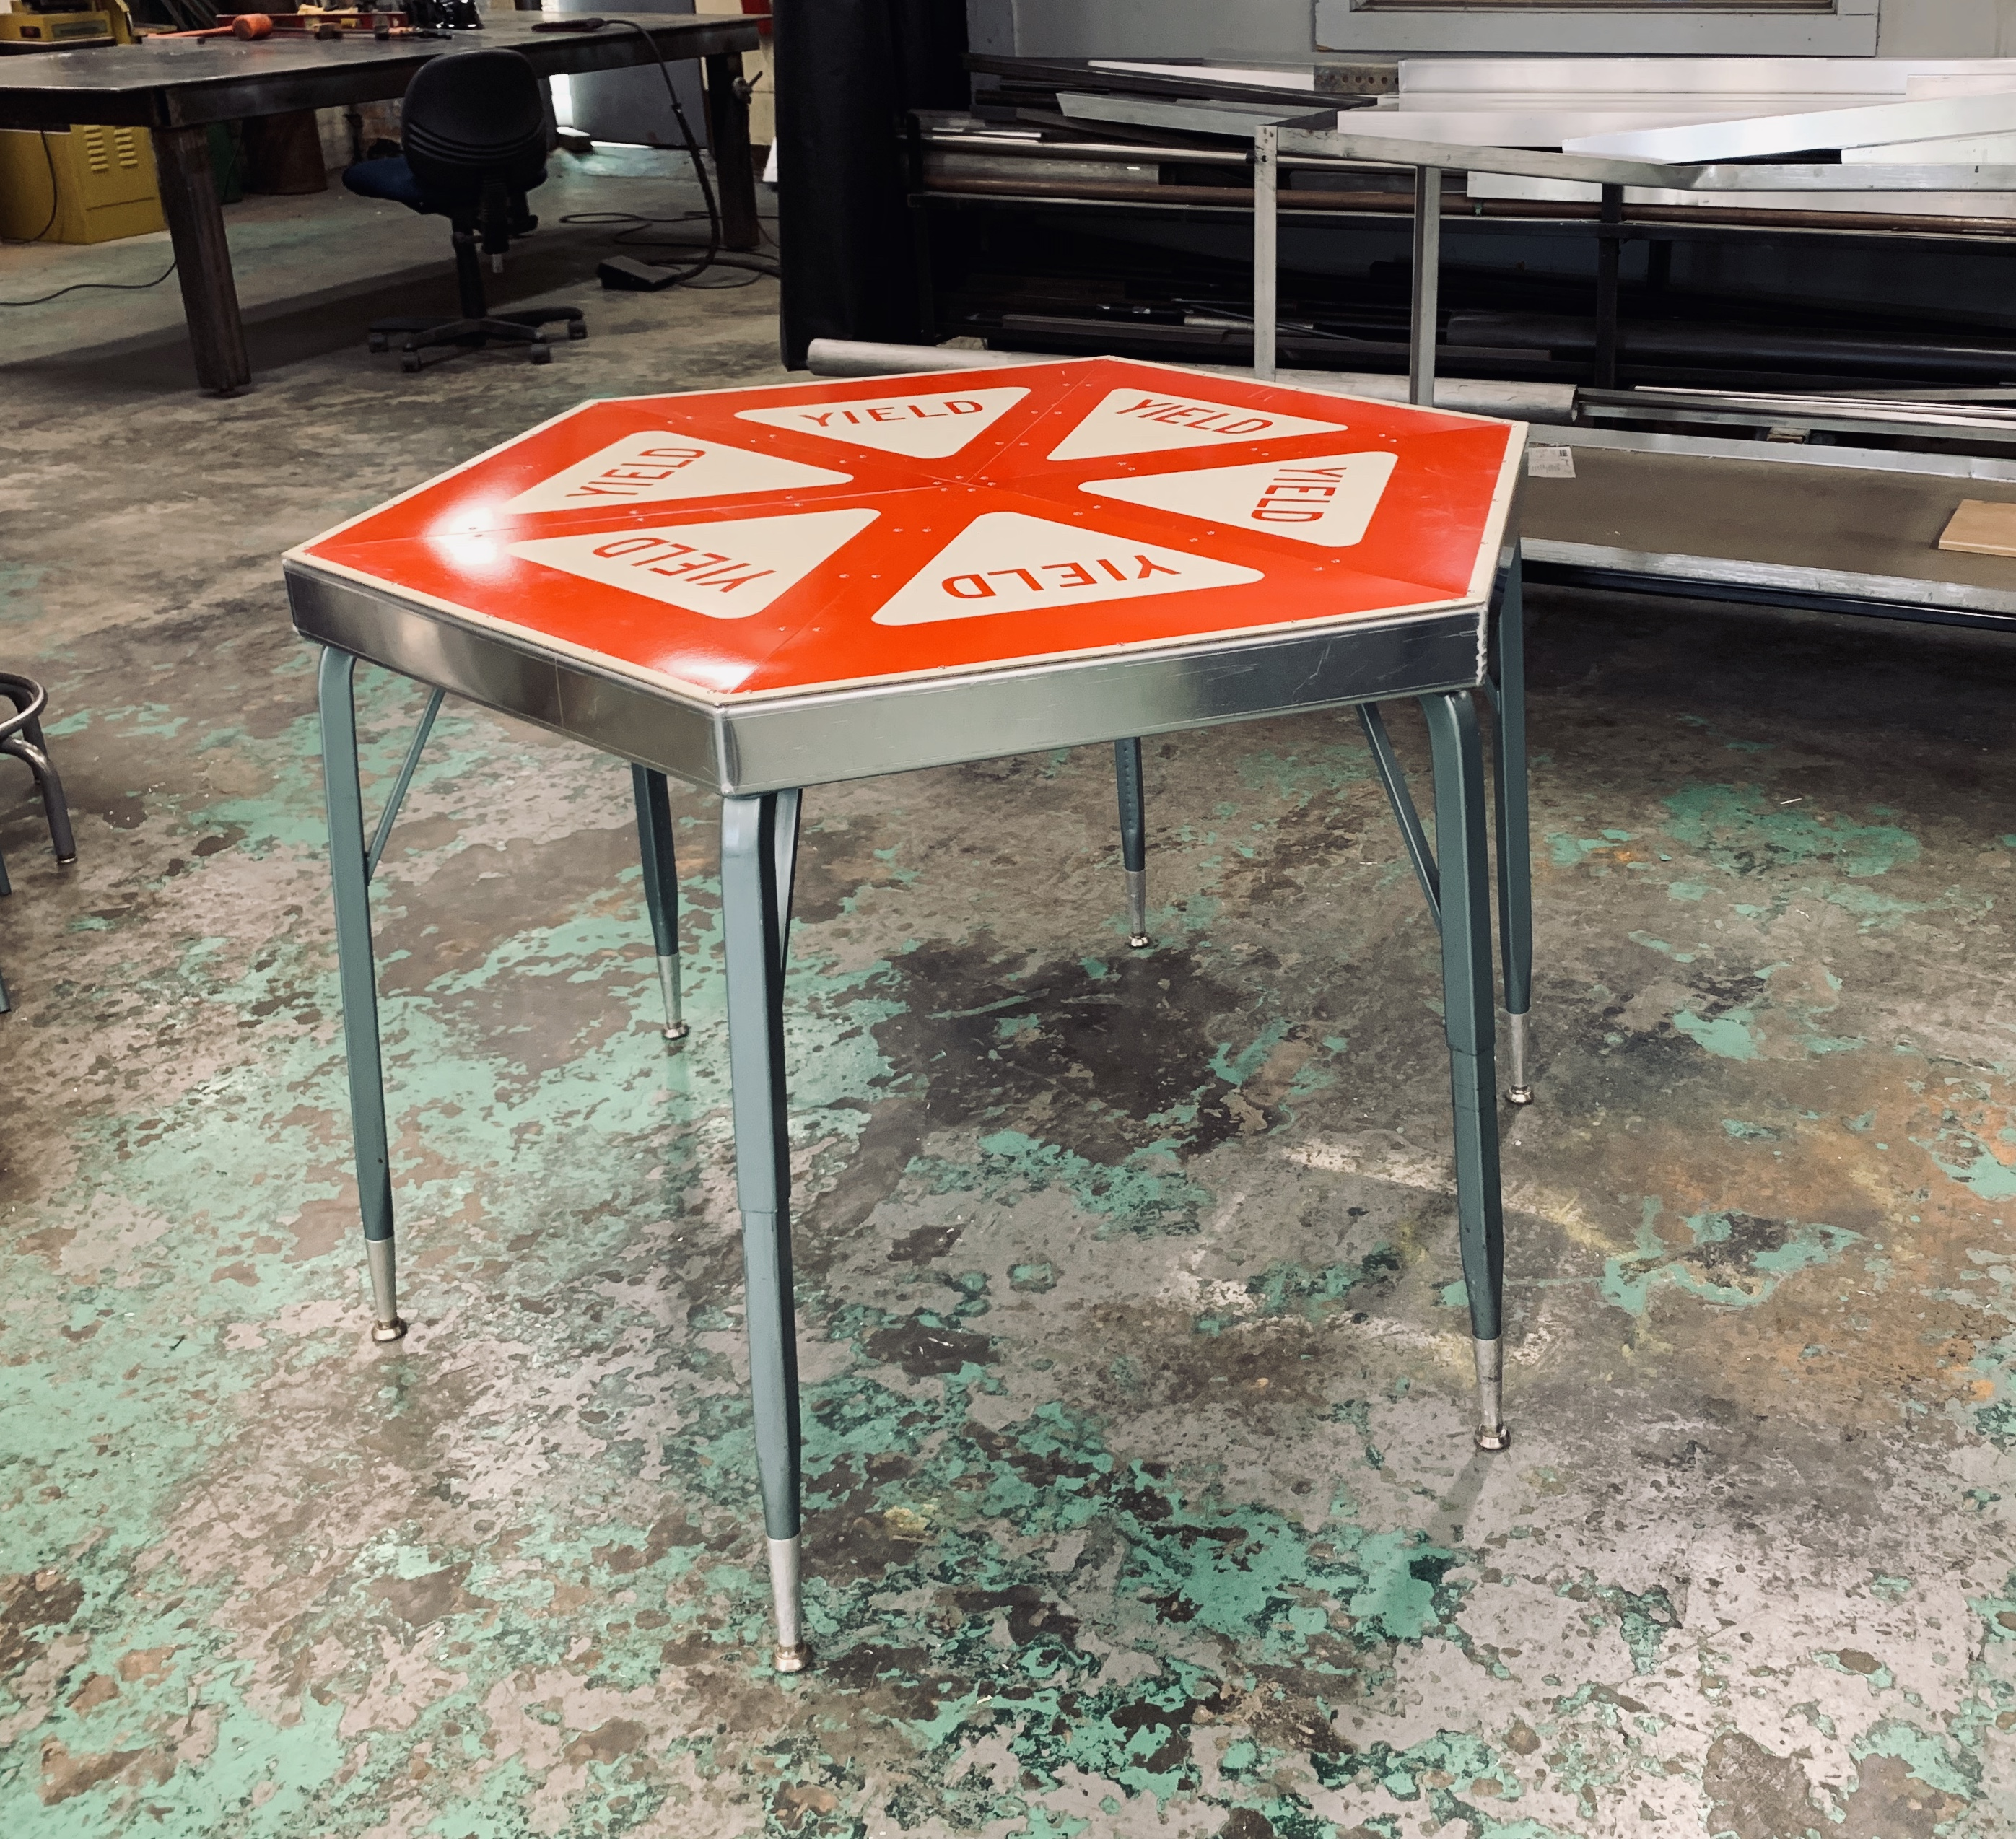 Yield sign table with reclaimed legs